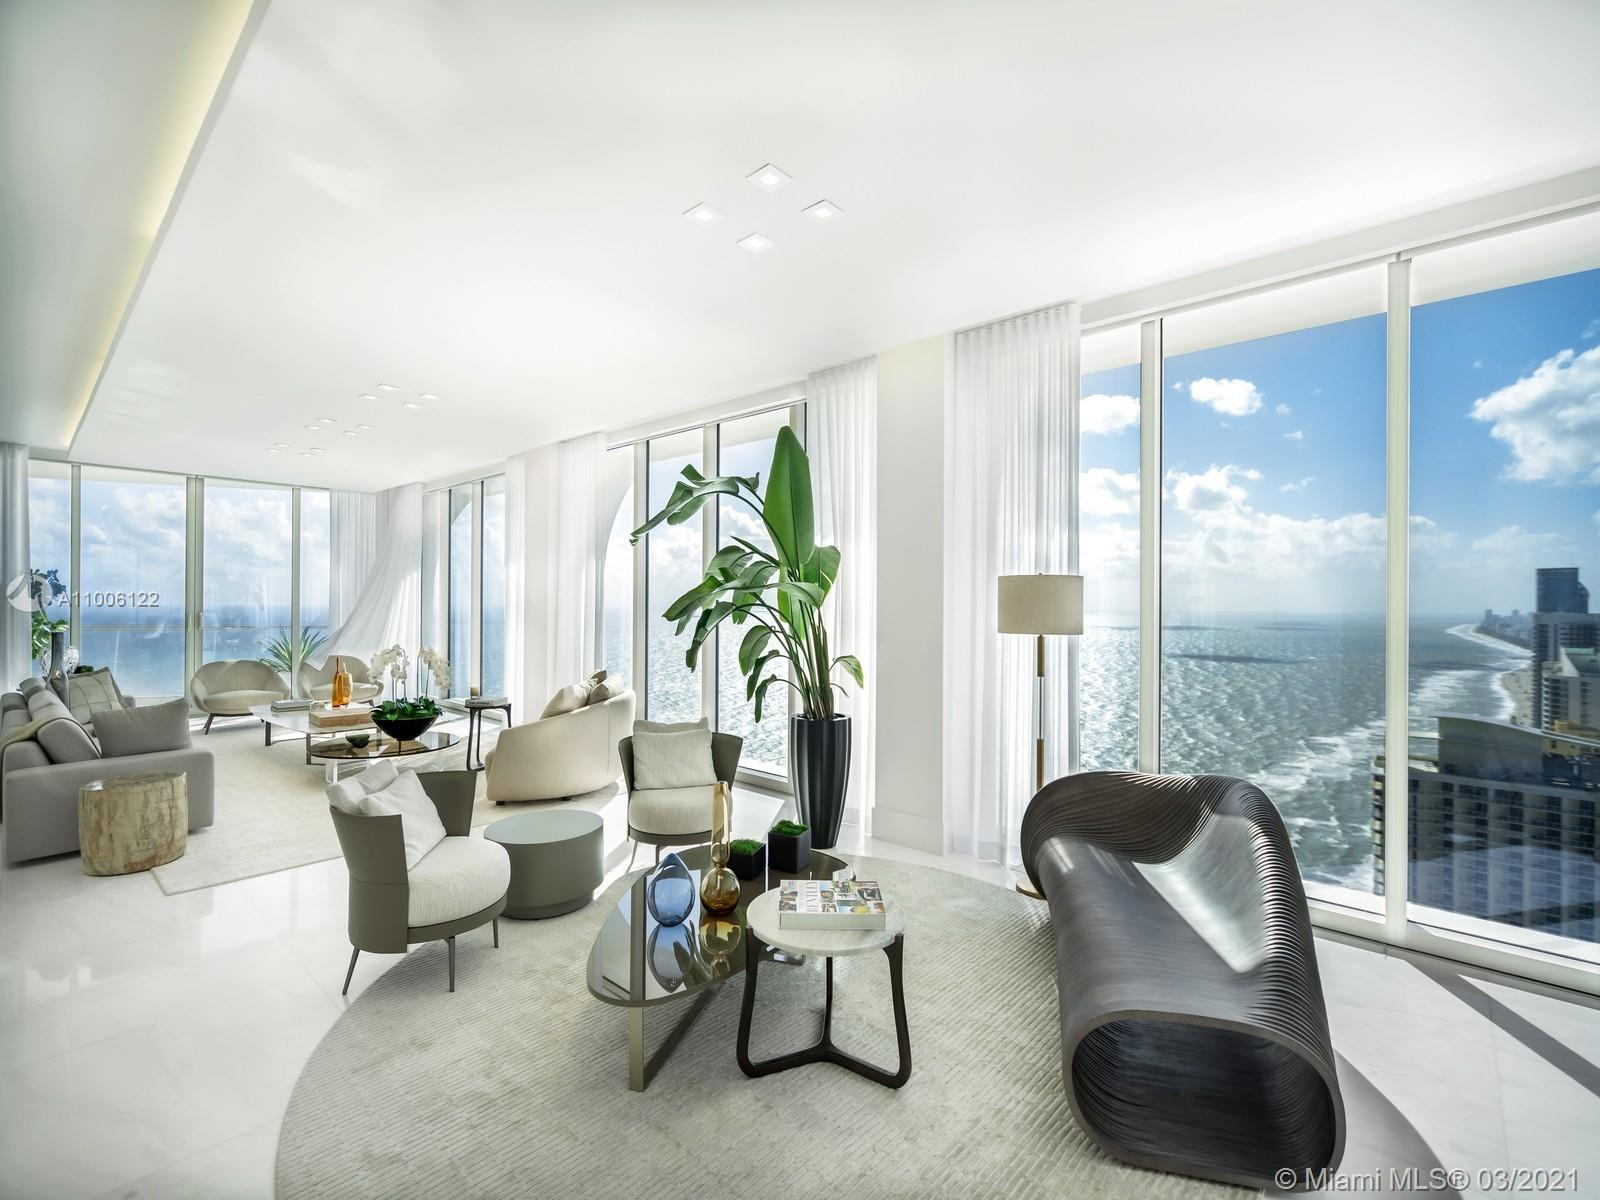 Enjoy 180 degree ocean and city views from this spectacular 5 bed, 6.5 bath corner unit in this breathtaking luxury tower by Pritzker prize-winning architects, Herzog & De Meuron. Featuring the highest quality finishes this 4,953 SF unit is move in ready, w/marble floorings throughout, built in closets, state of the art appliances and a smart home system. This unit has the ideal floor-plan w/a expansive master suite, walk in closet and bathroom, 3 additional rooms w/ensuite bathrooms as well as a service quarters and laundry room, offering stunning views from each of it's 5 terraces, this iconic unit is definitely worth a visit. Take advantage of the resort like amenities found in the building including the famous Tata Harper spa, exceptional dining services,fitness facilities and more.